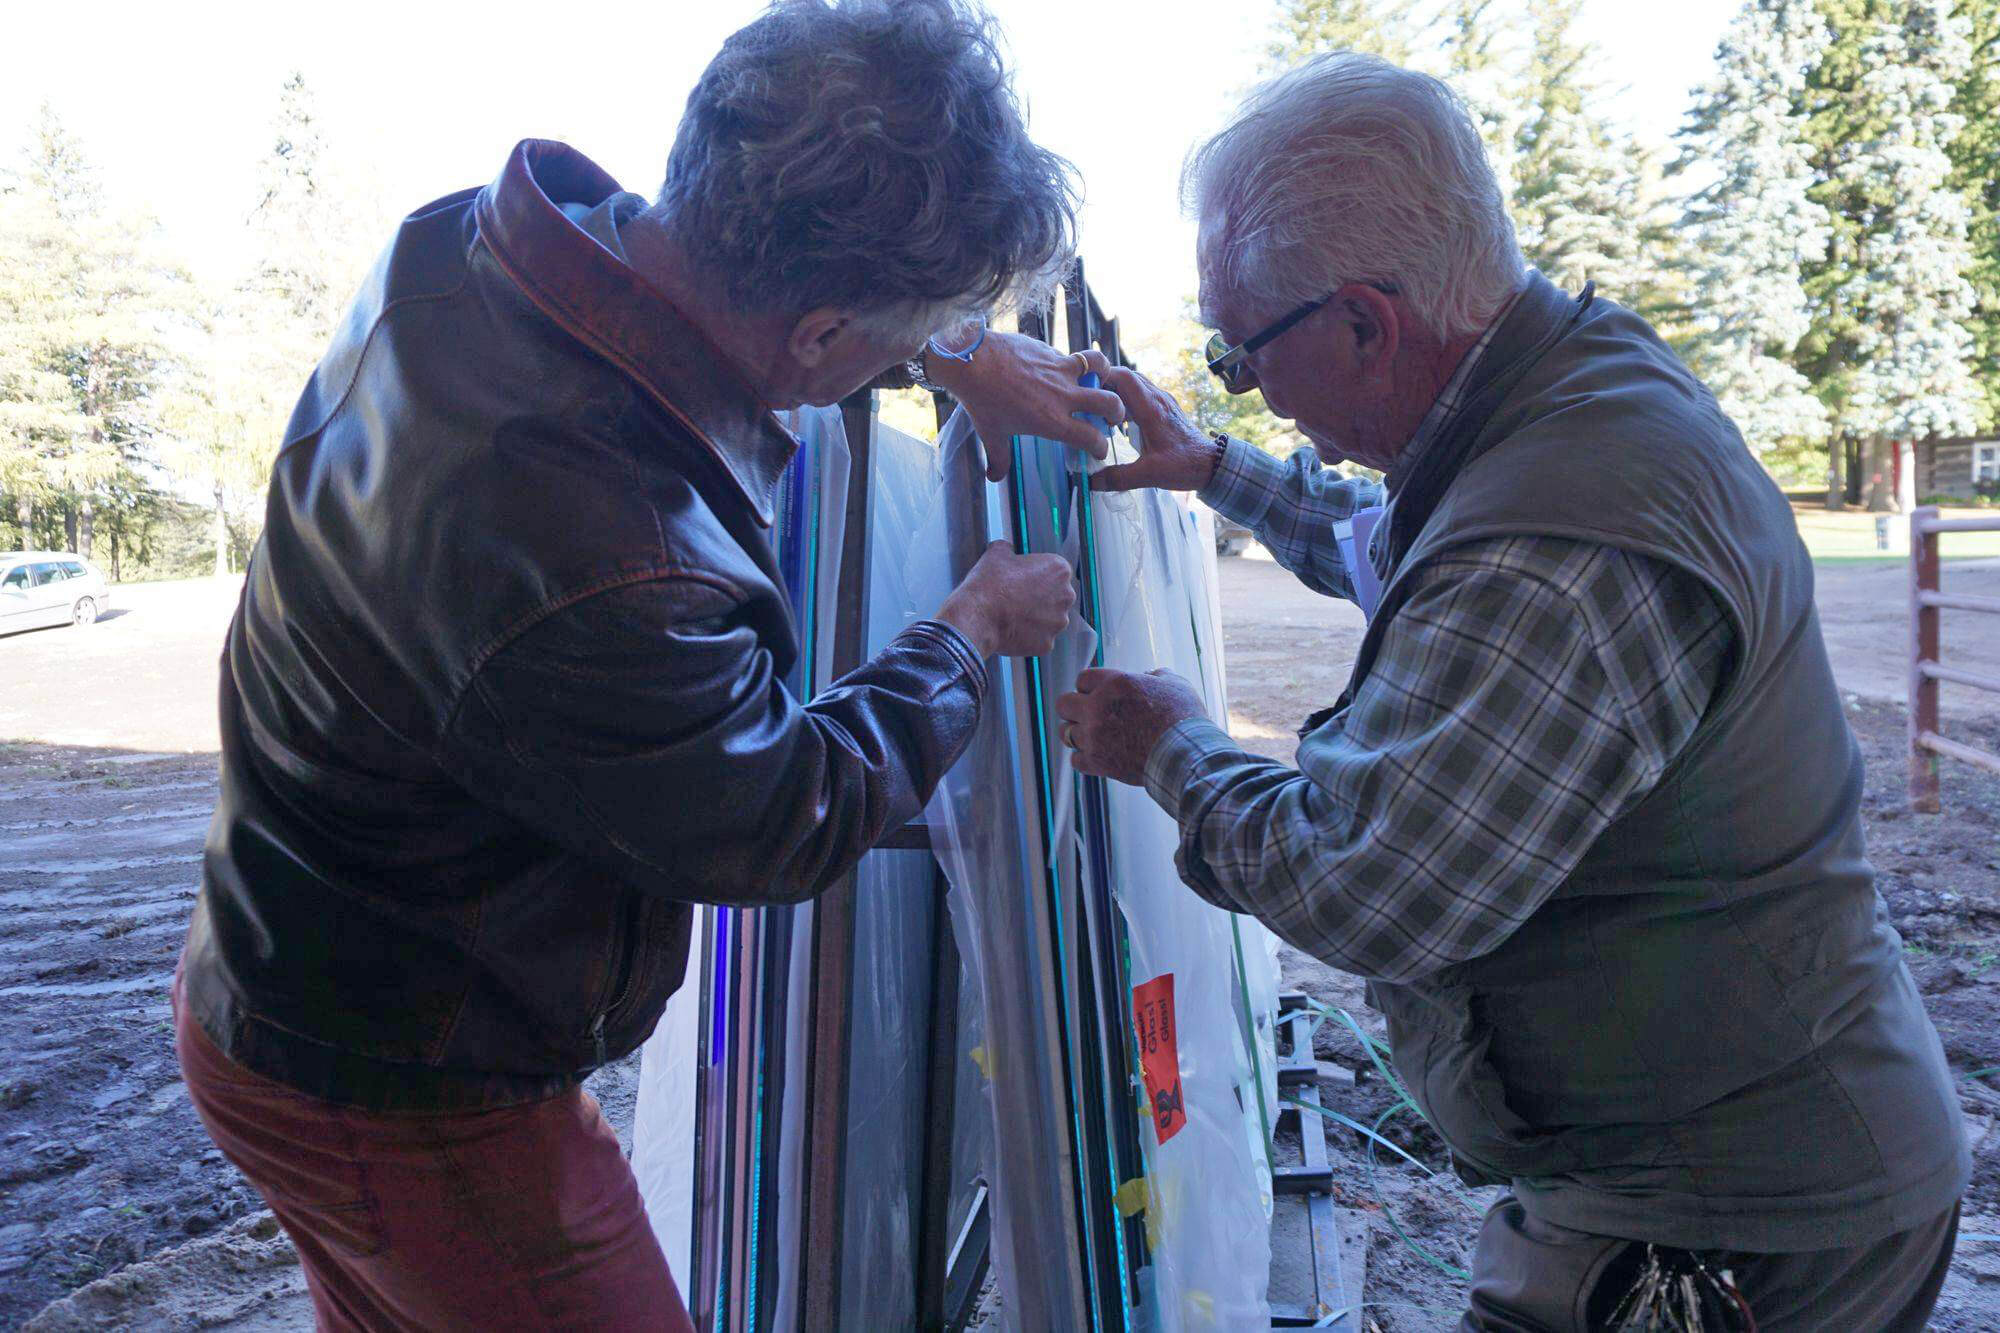 Ted Harasti, The Creative Director and Project Manager, and the Stations Artist, Stuart Reid, inspect the condition of these, one-of-a-kind precious pieces of art.